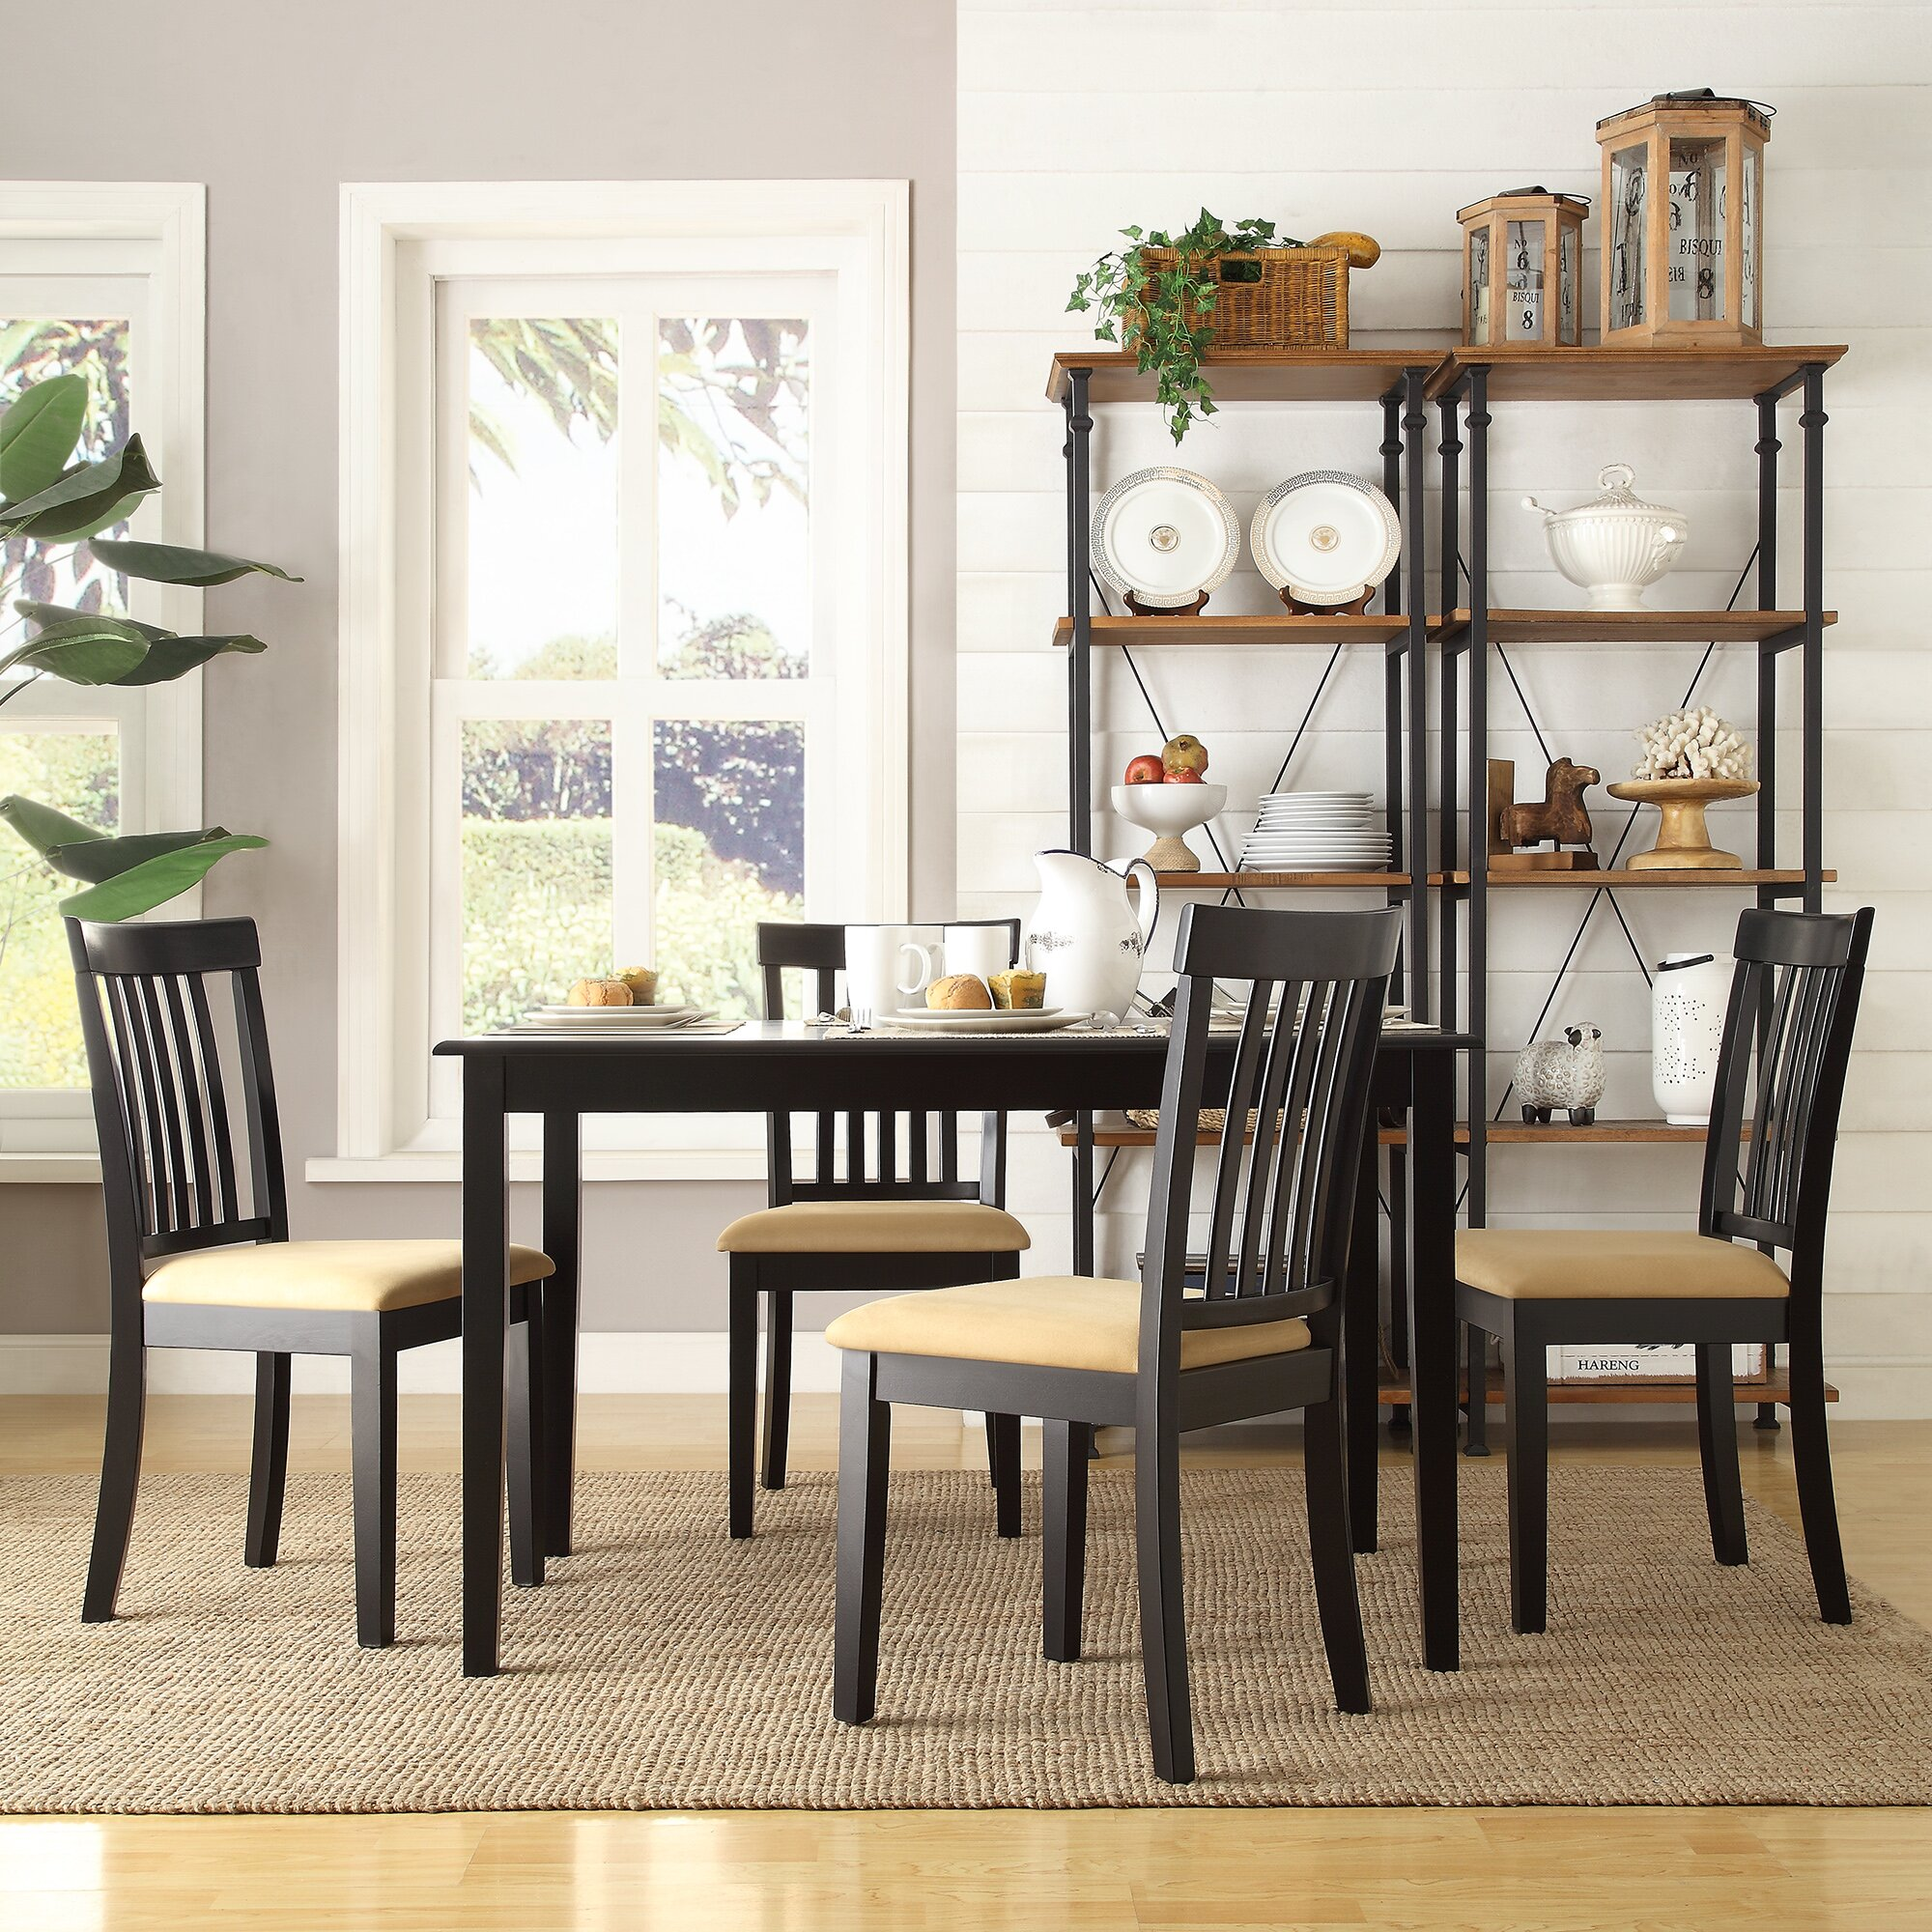 Kingstown home jessica 5 piece dining set reviews wayfair for 5 piece dining room sets